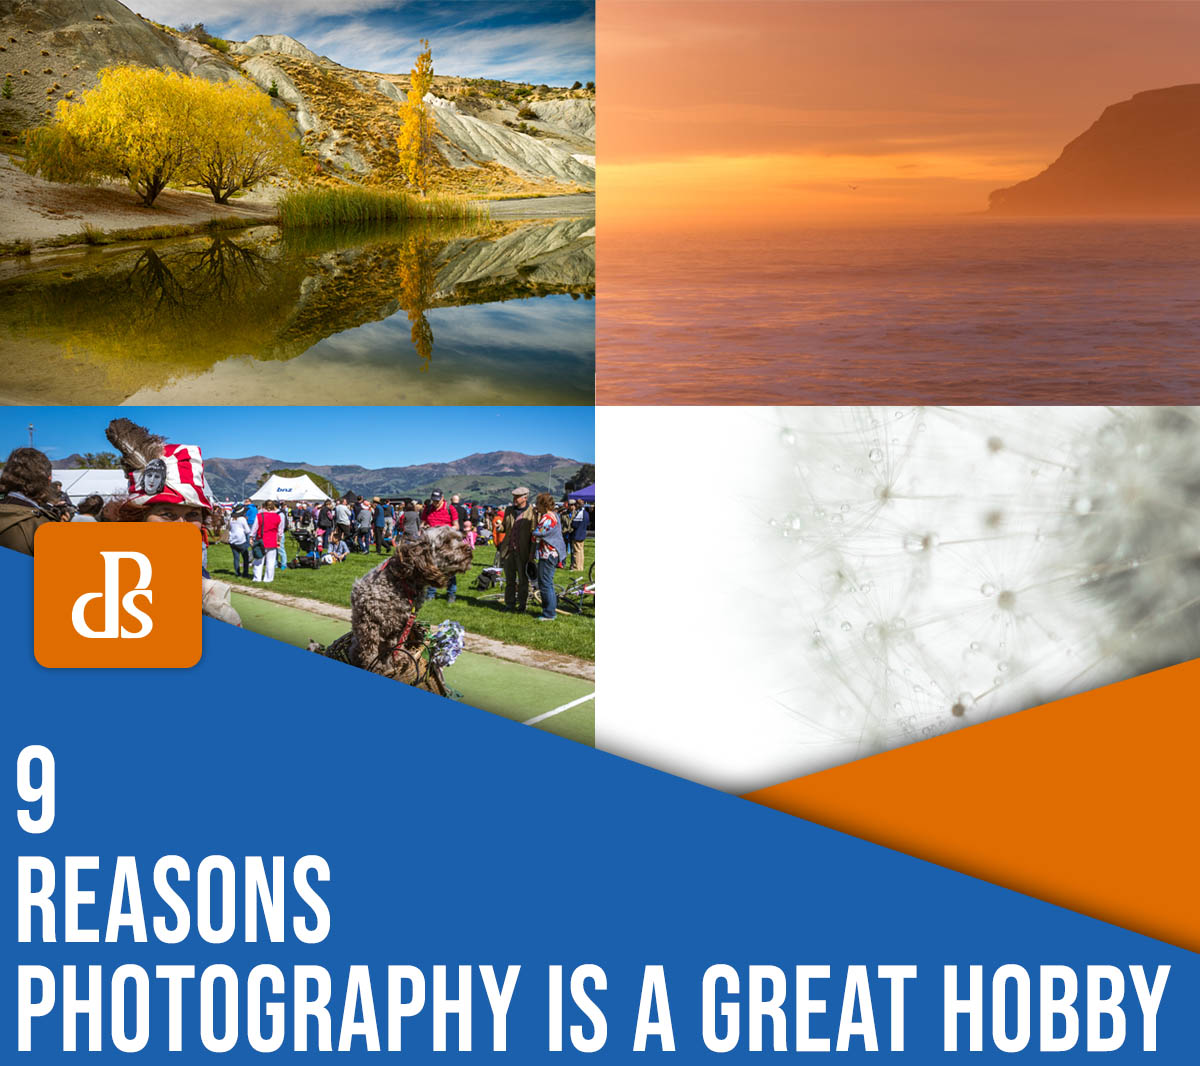 9 Reasons Photography Is a Great Hobby (in 2021)